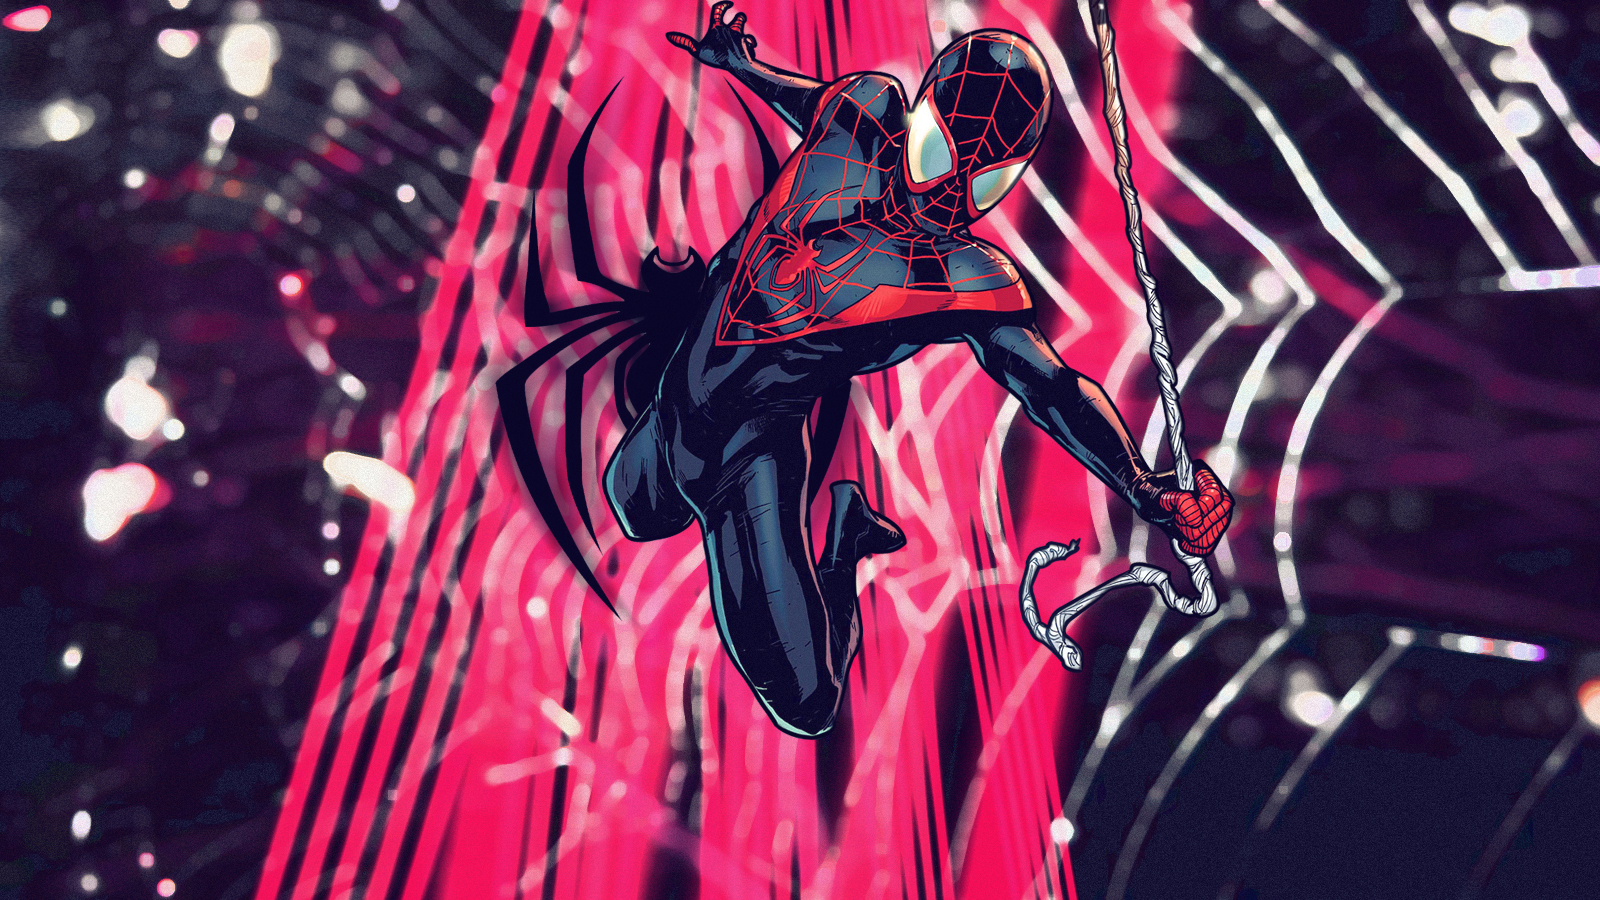 Ultimate Spider-Man: Miles | Wallpaper by Squiddytron